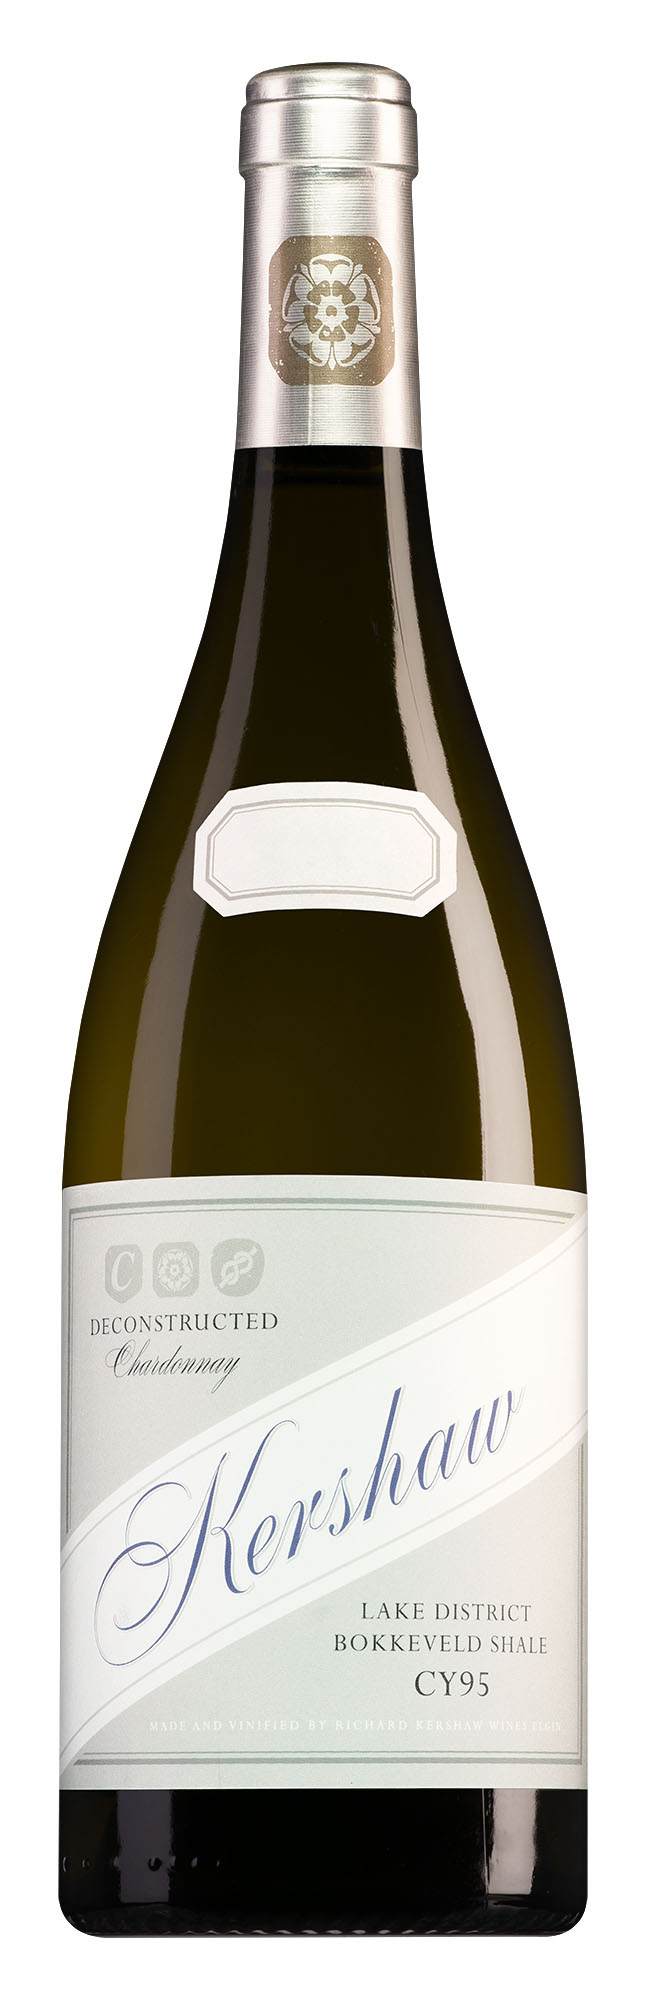 Kershaw Wines Lake District Bokkeveld Shales Deconstructed CY96 Chardonnay 2019